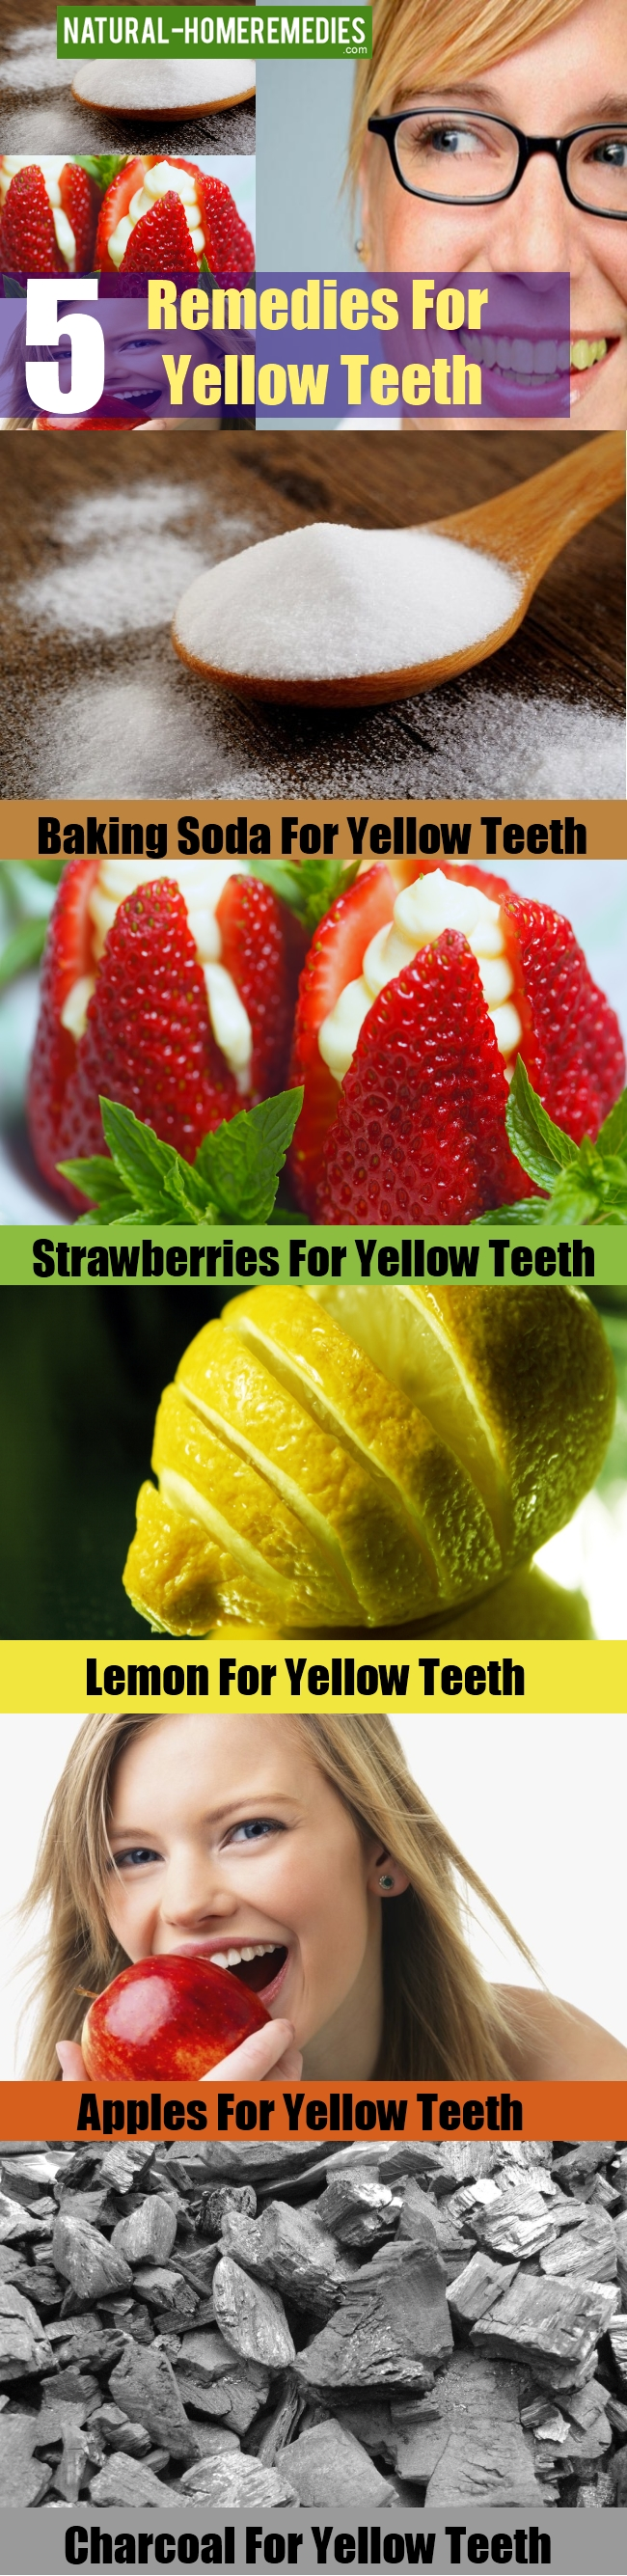 Remedies For Yellow Teeth